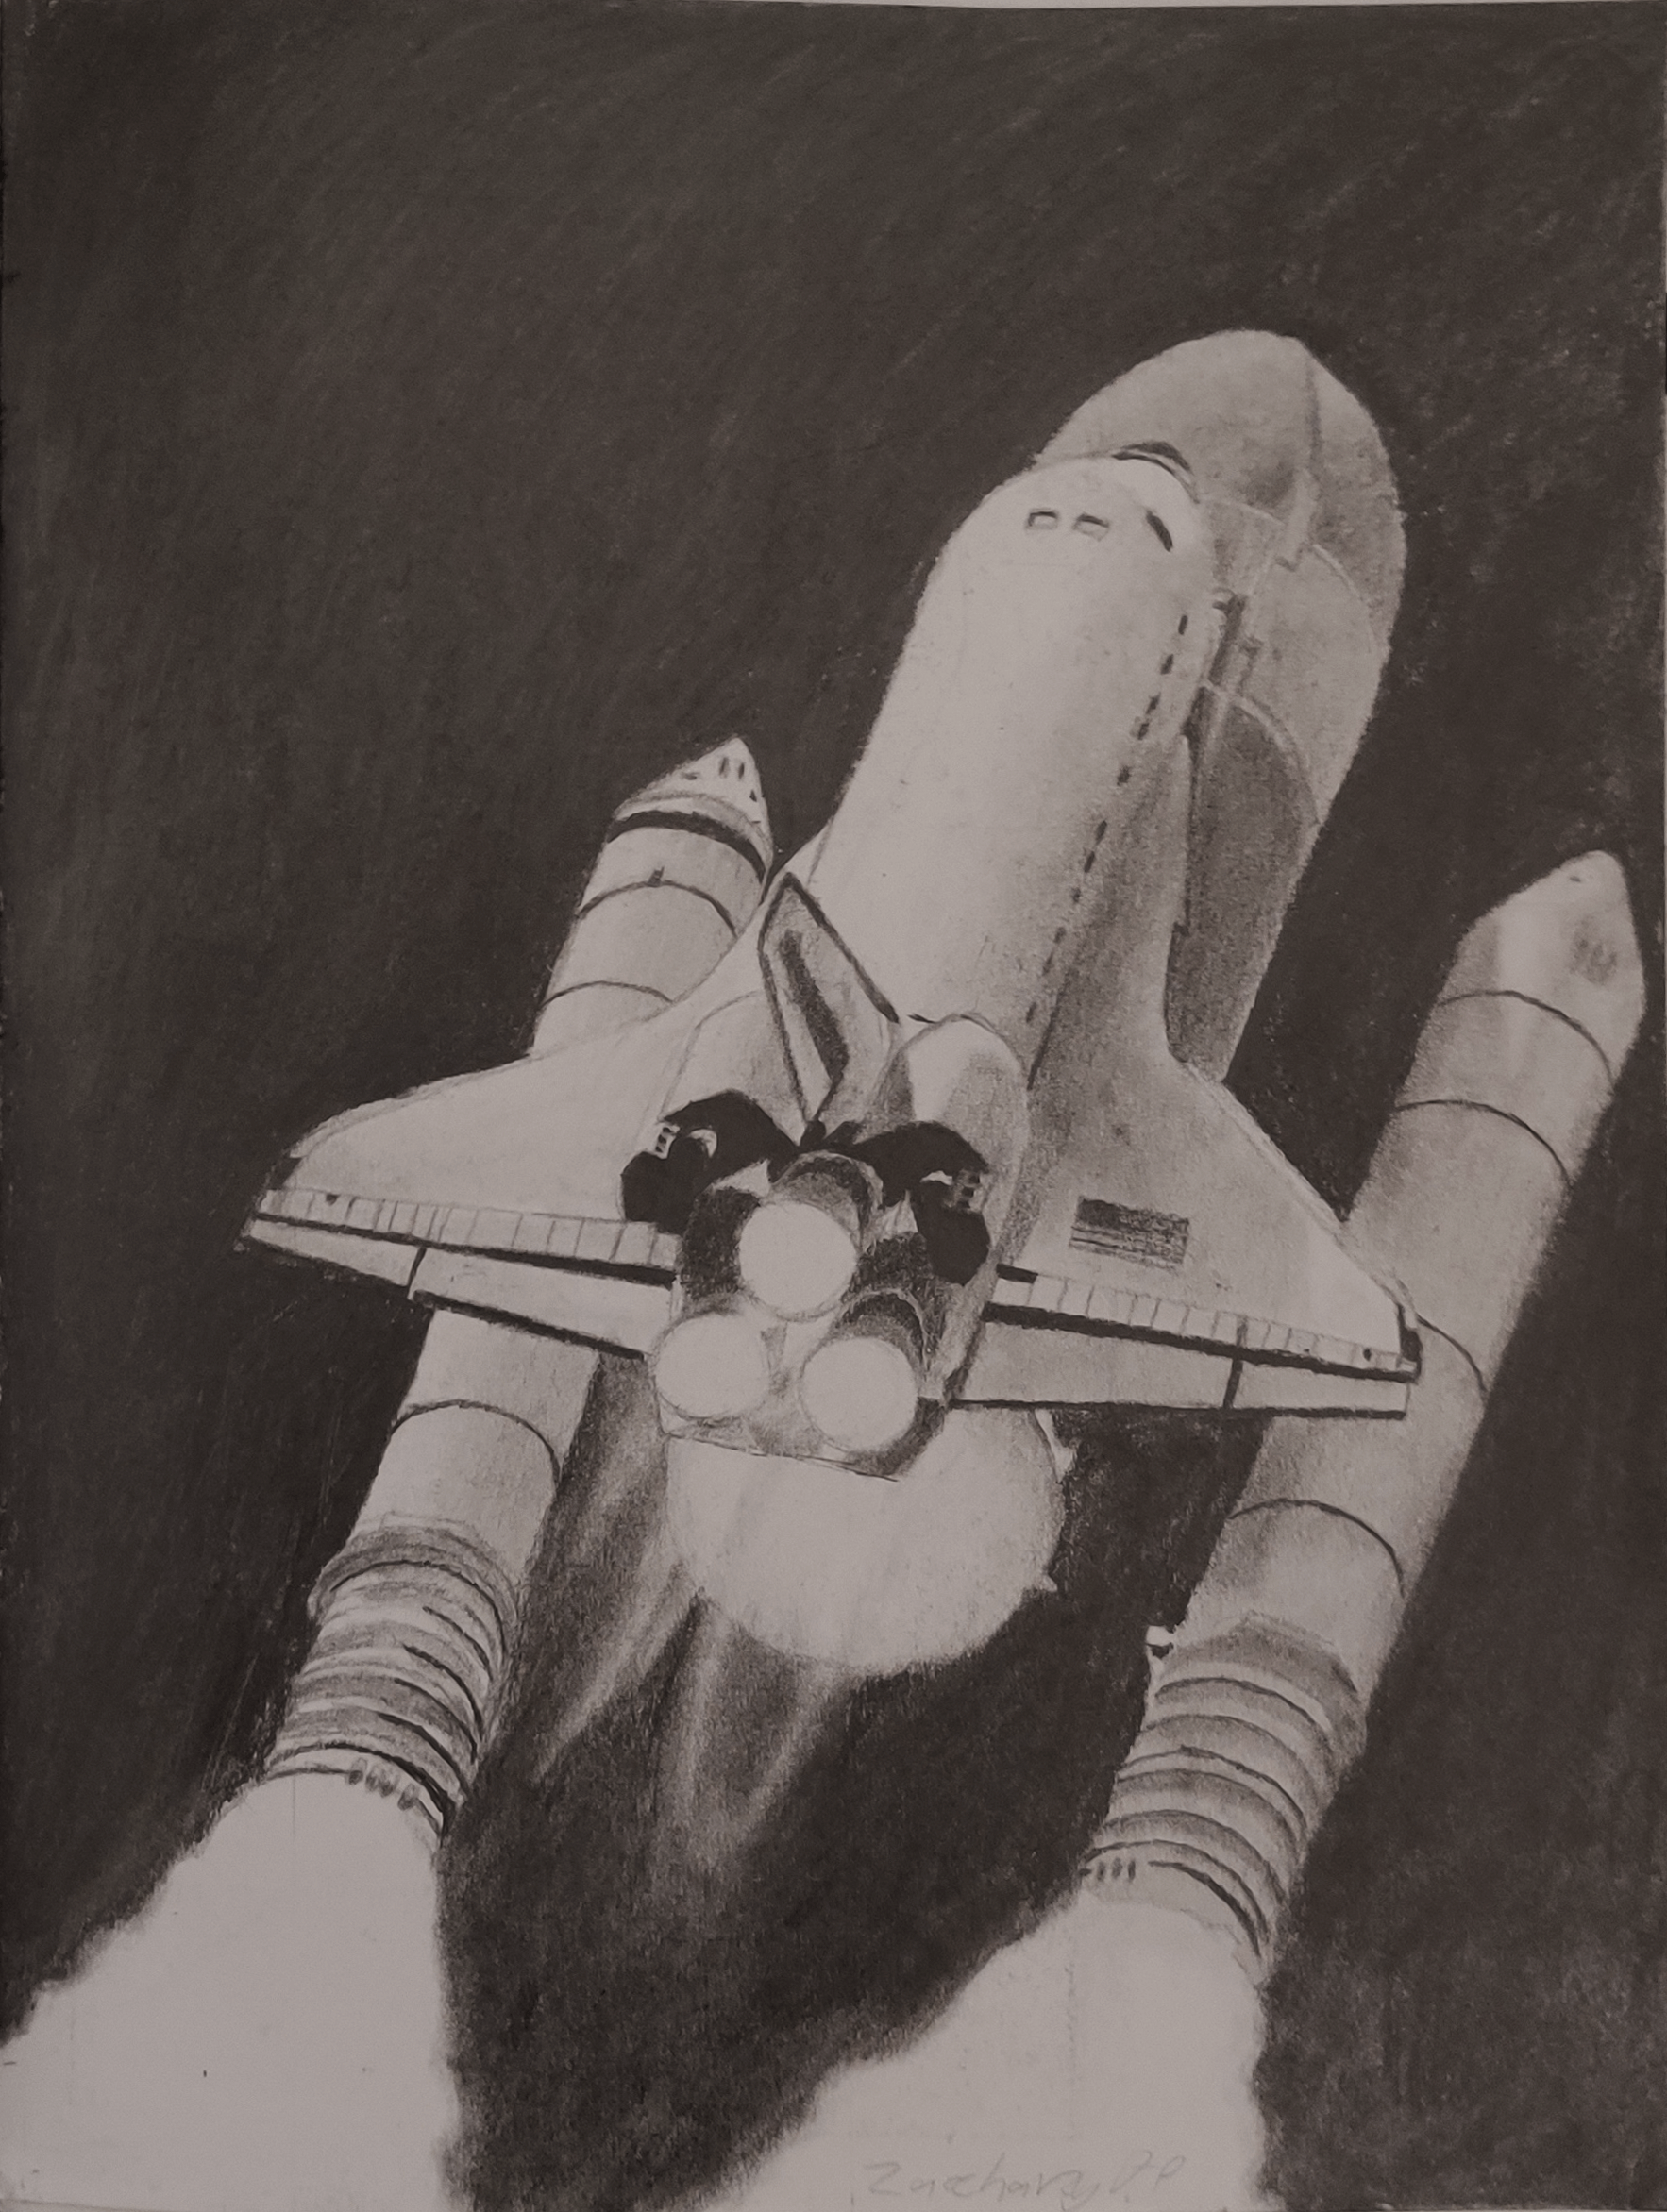 A drawing of a space shuttle taking off, just as the boosters detach.